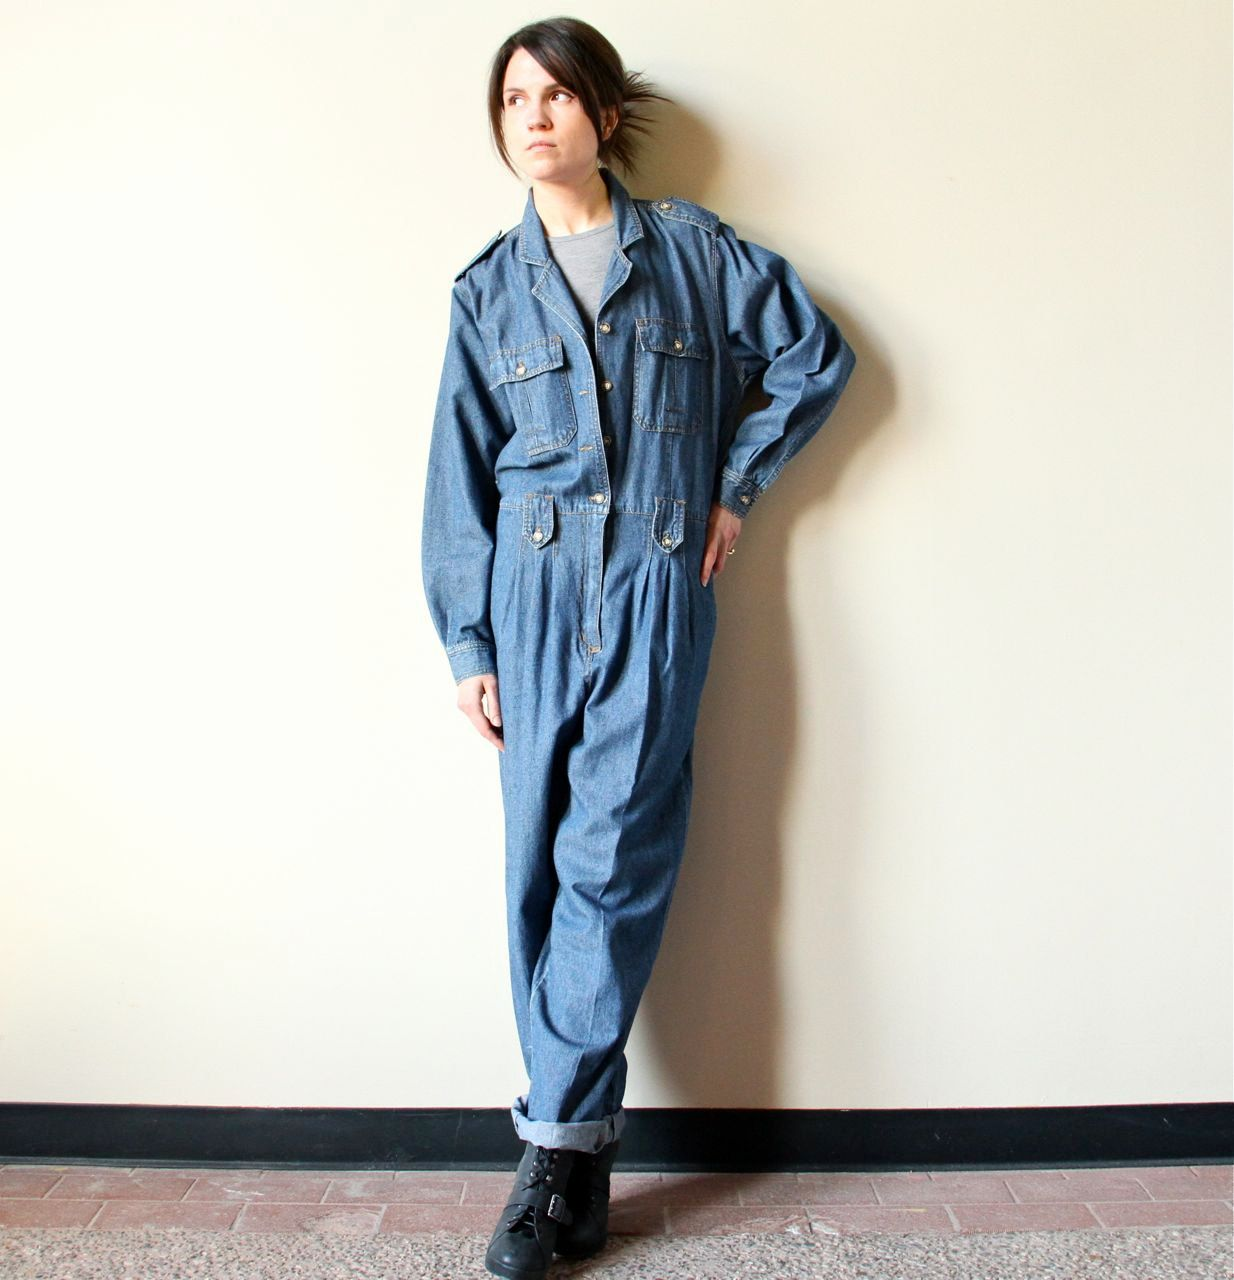 steal work wear women work coveralls jumpsuit fashion on work coveralls id=94088